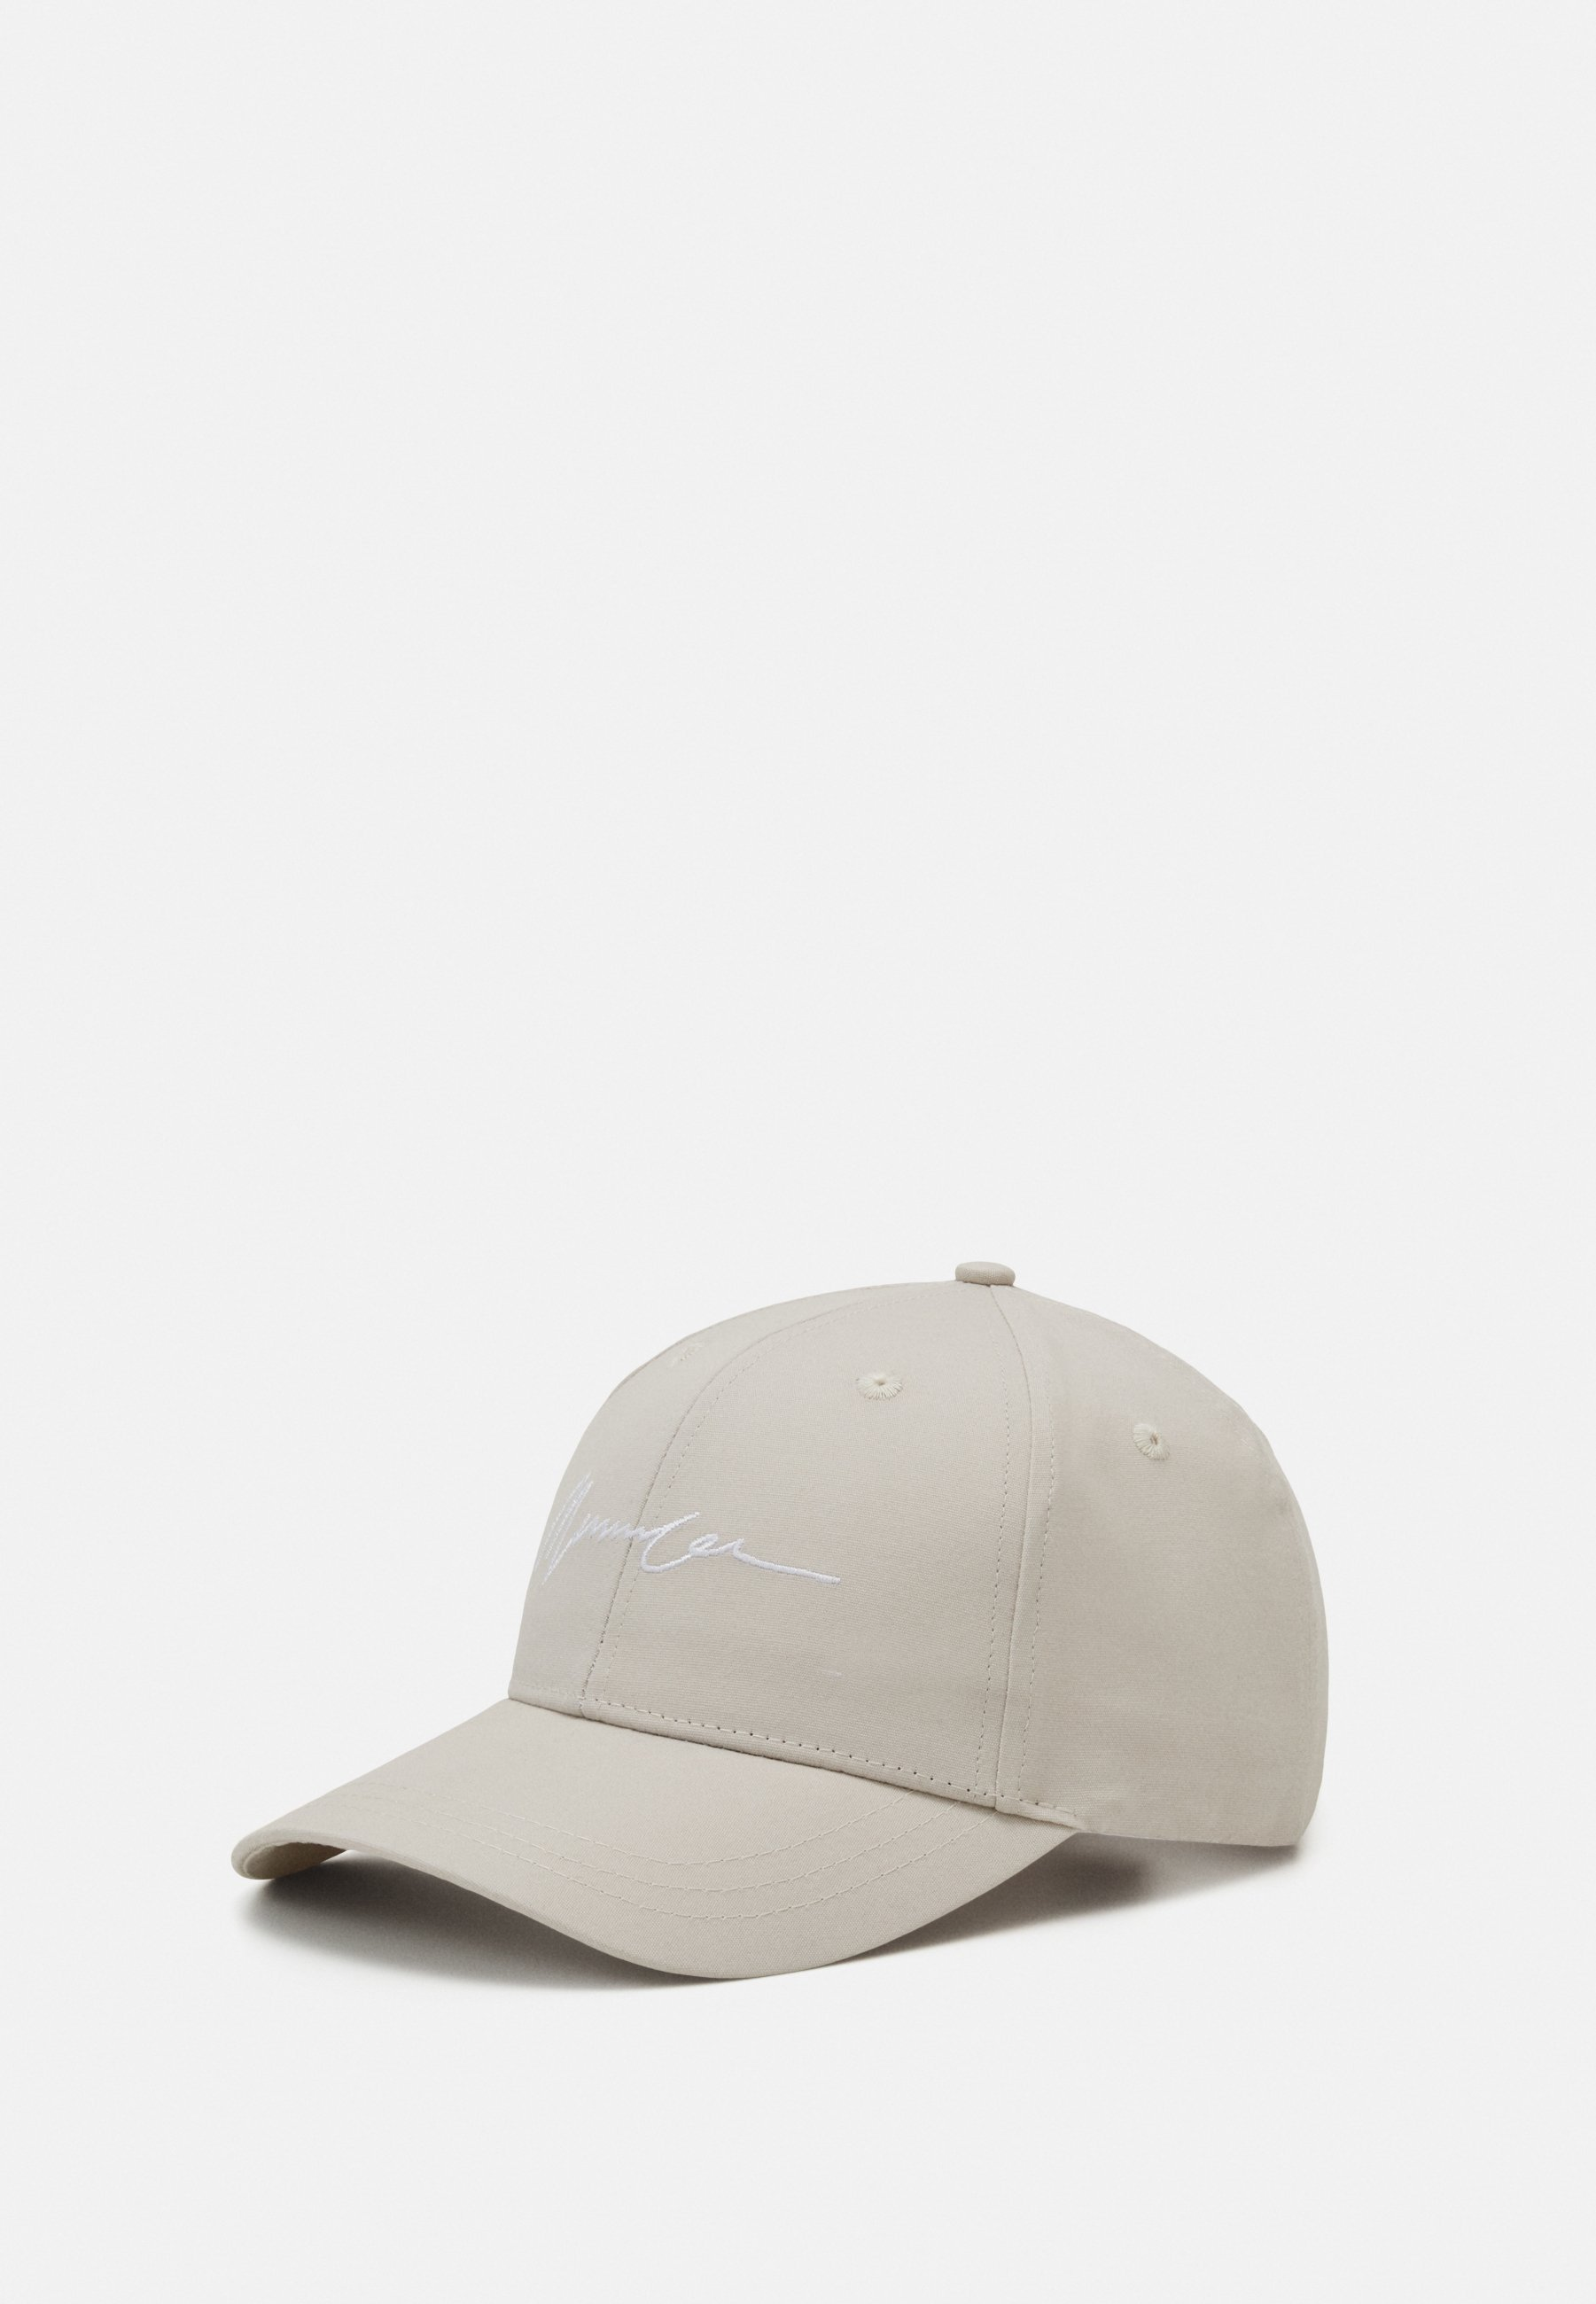 NYDALEN CANVAS LYSEBEIGE CAPS | Hoyer.no